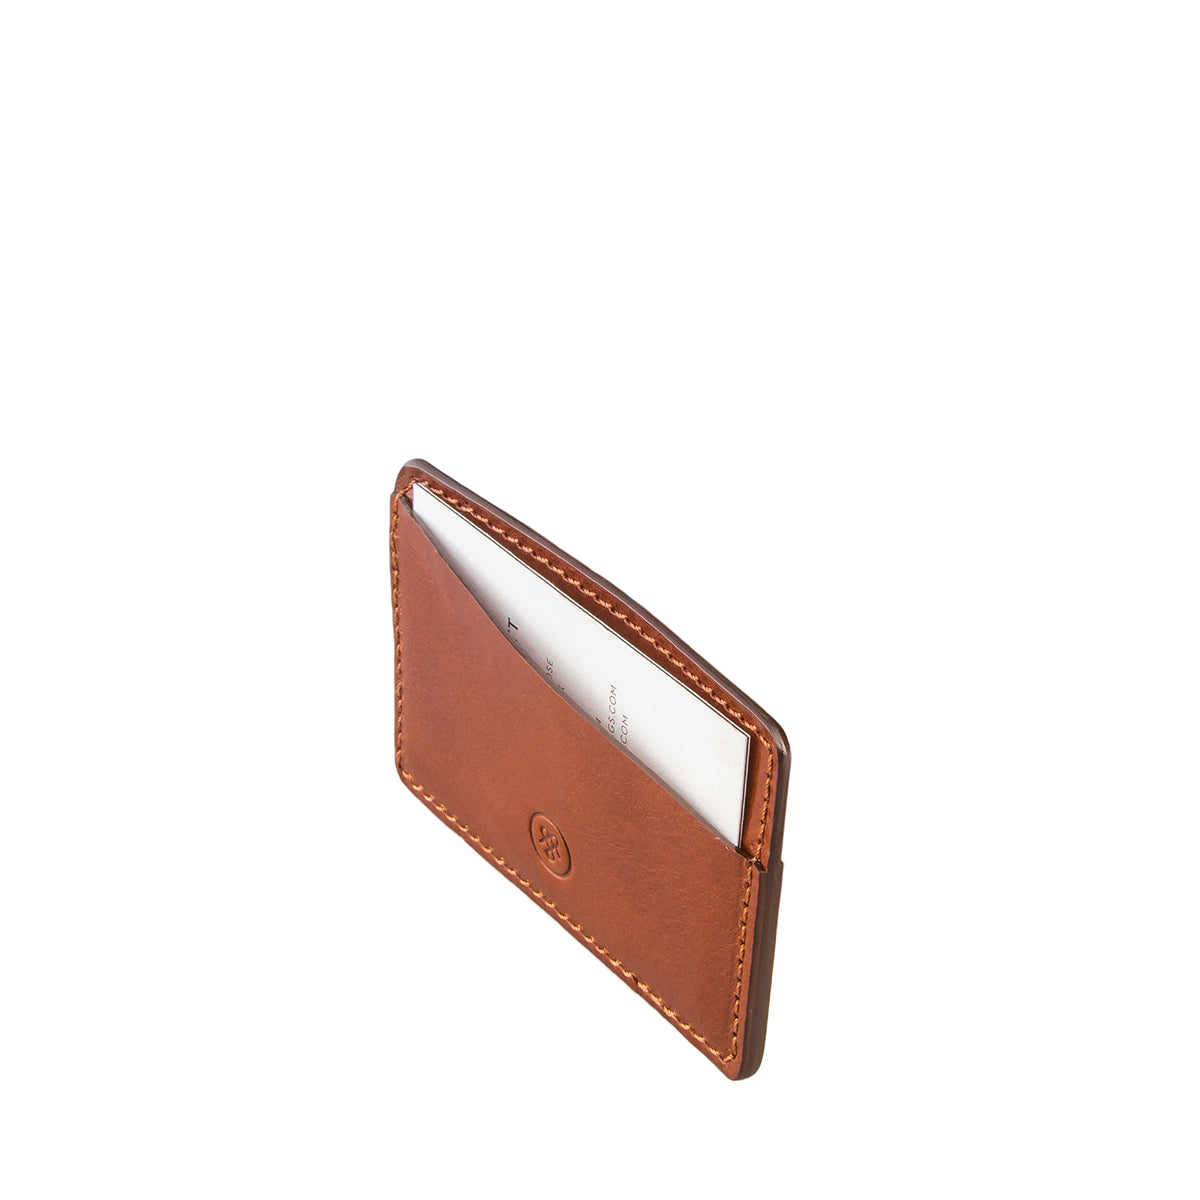 Image 3 of the 'Max' Tan Leather Business Card Holder